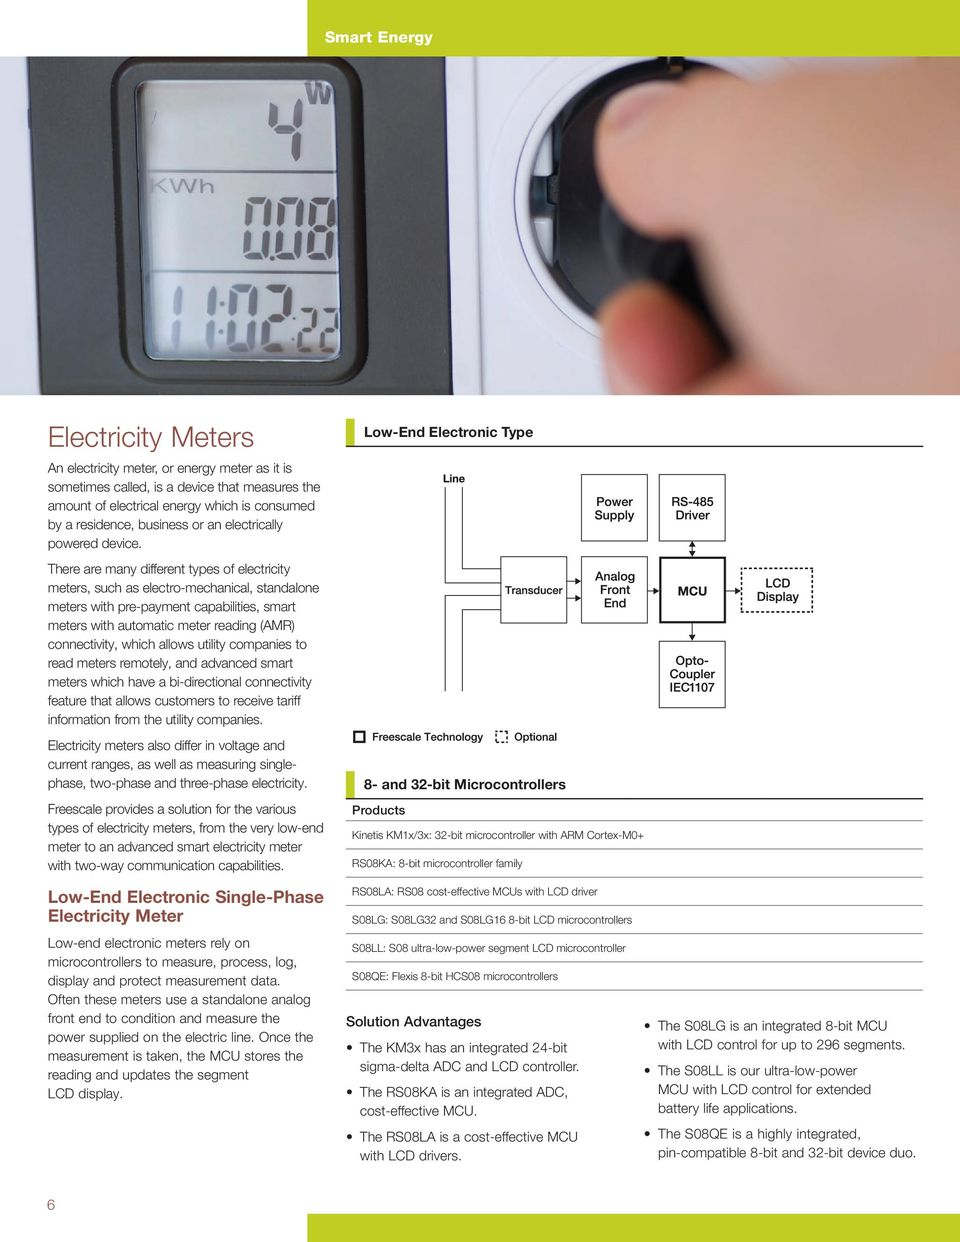 medium resolution of there are many different types of electricity meters such as electro mechanical standalone